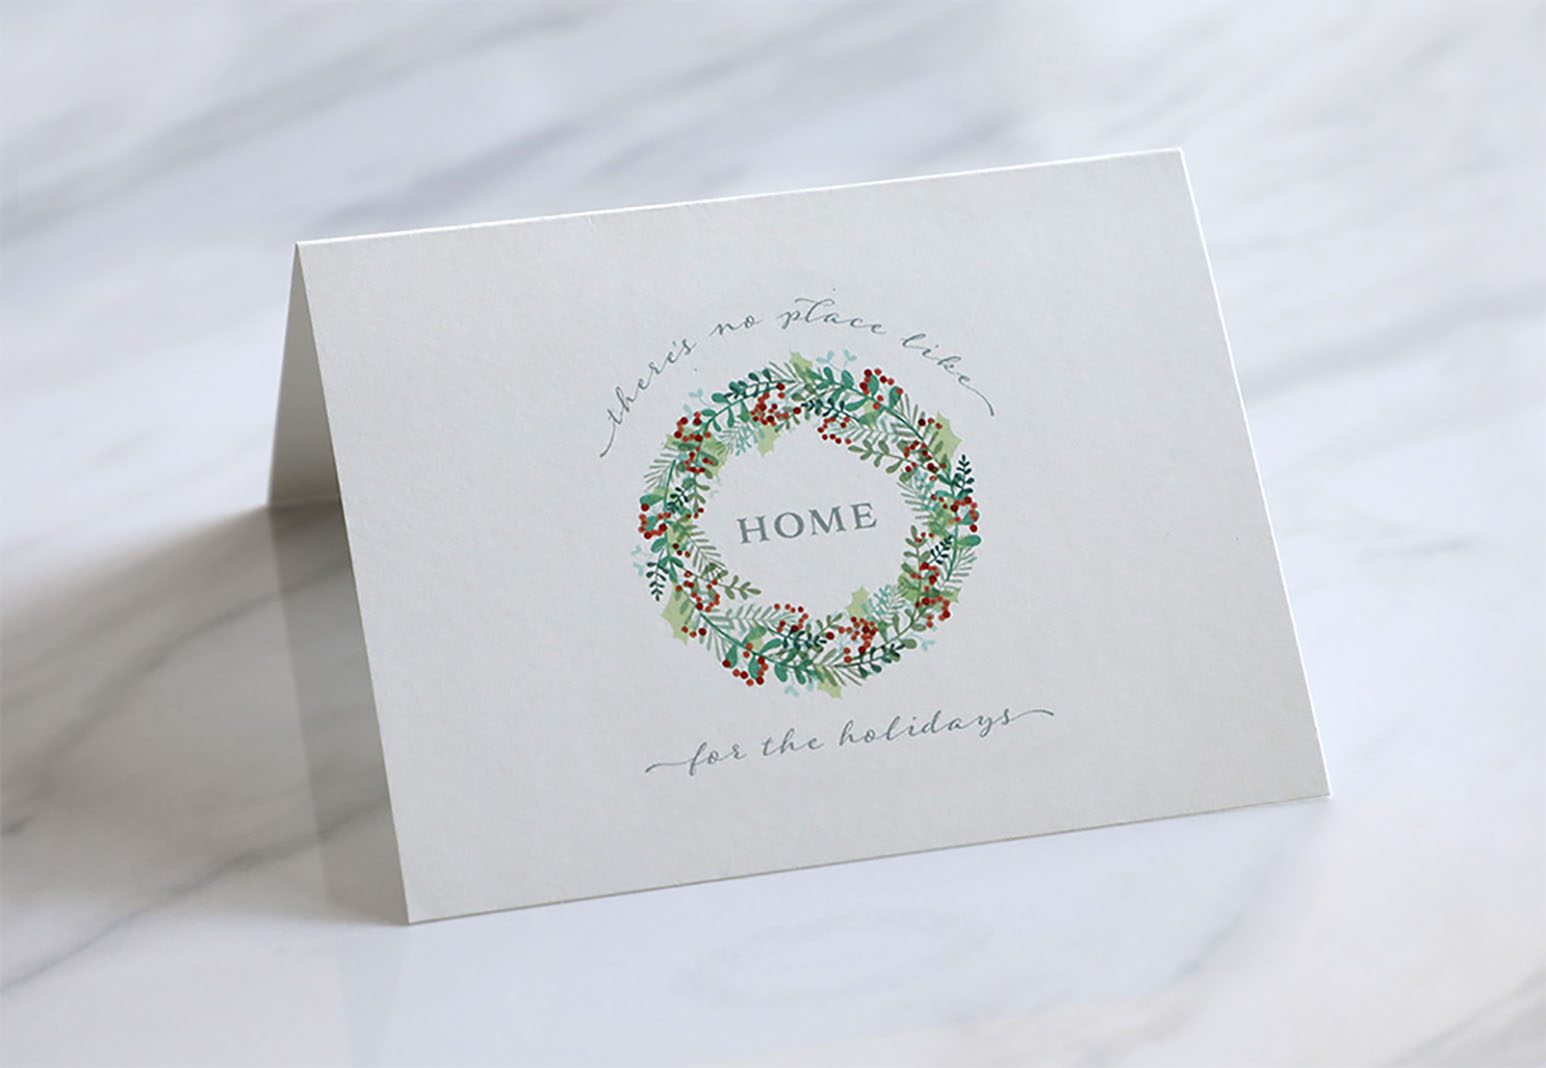 New Natural Greeting Cards. An excellent choice if you would like to include a handwritten note in your cards and or if you're looking for an eco-friendly option.